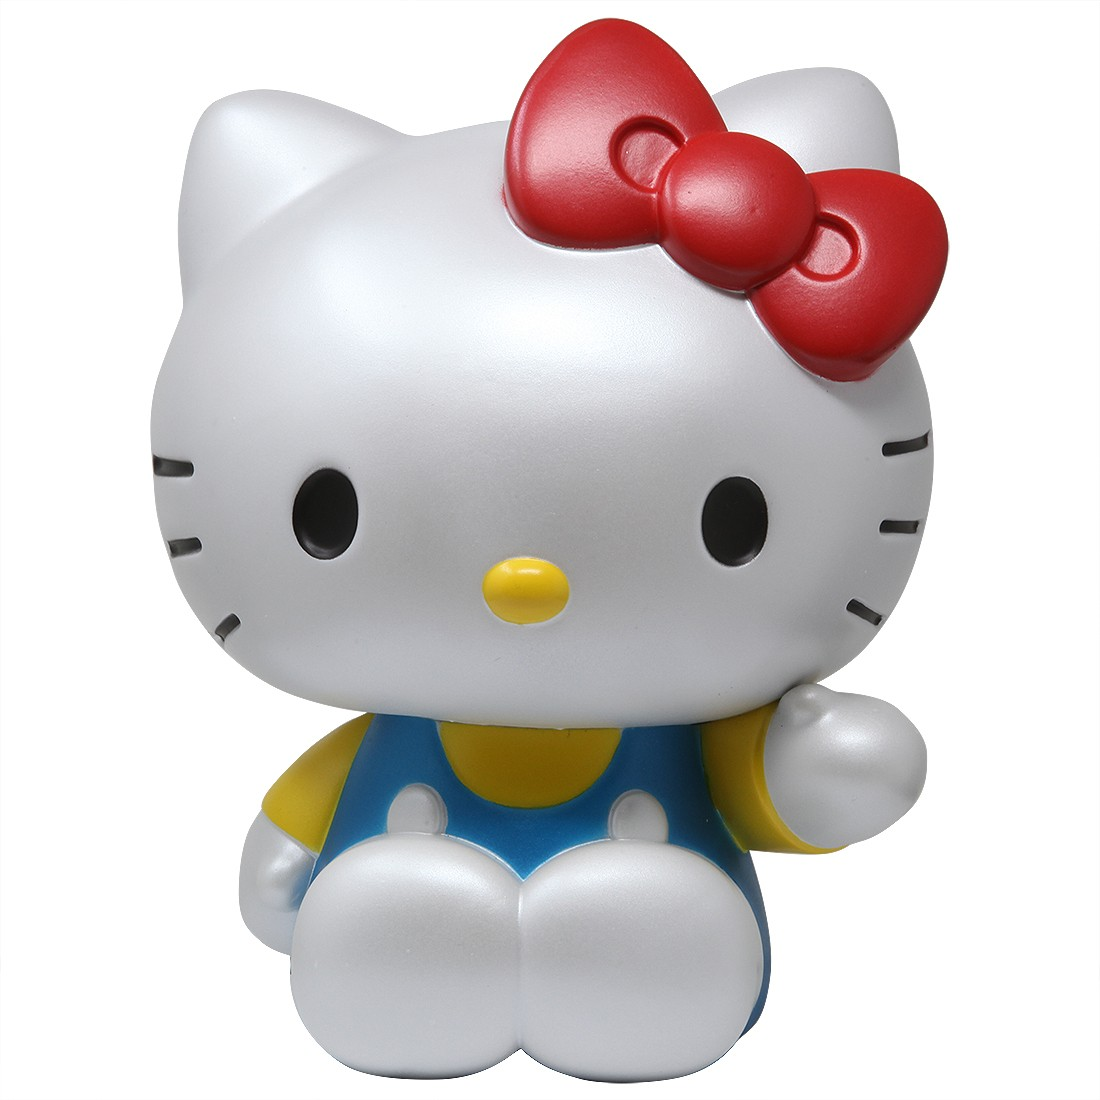 Monogram Sanrio Hello Kitty Figural PVC Bank (white)